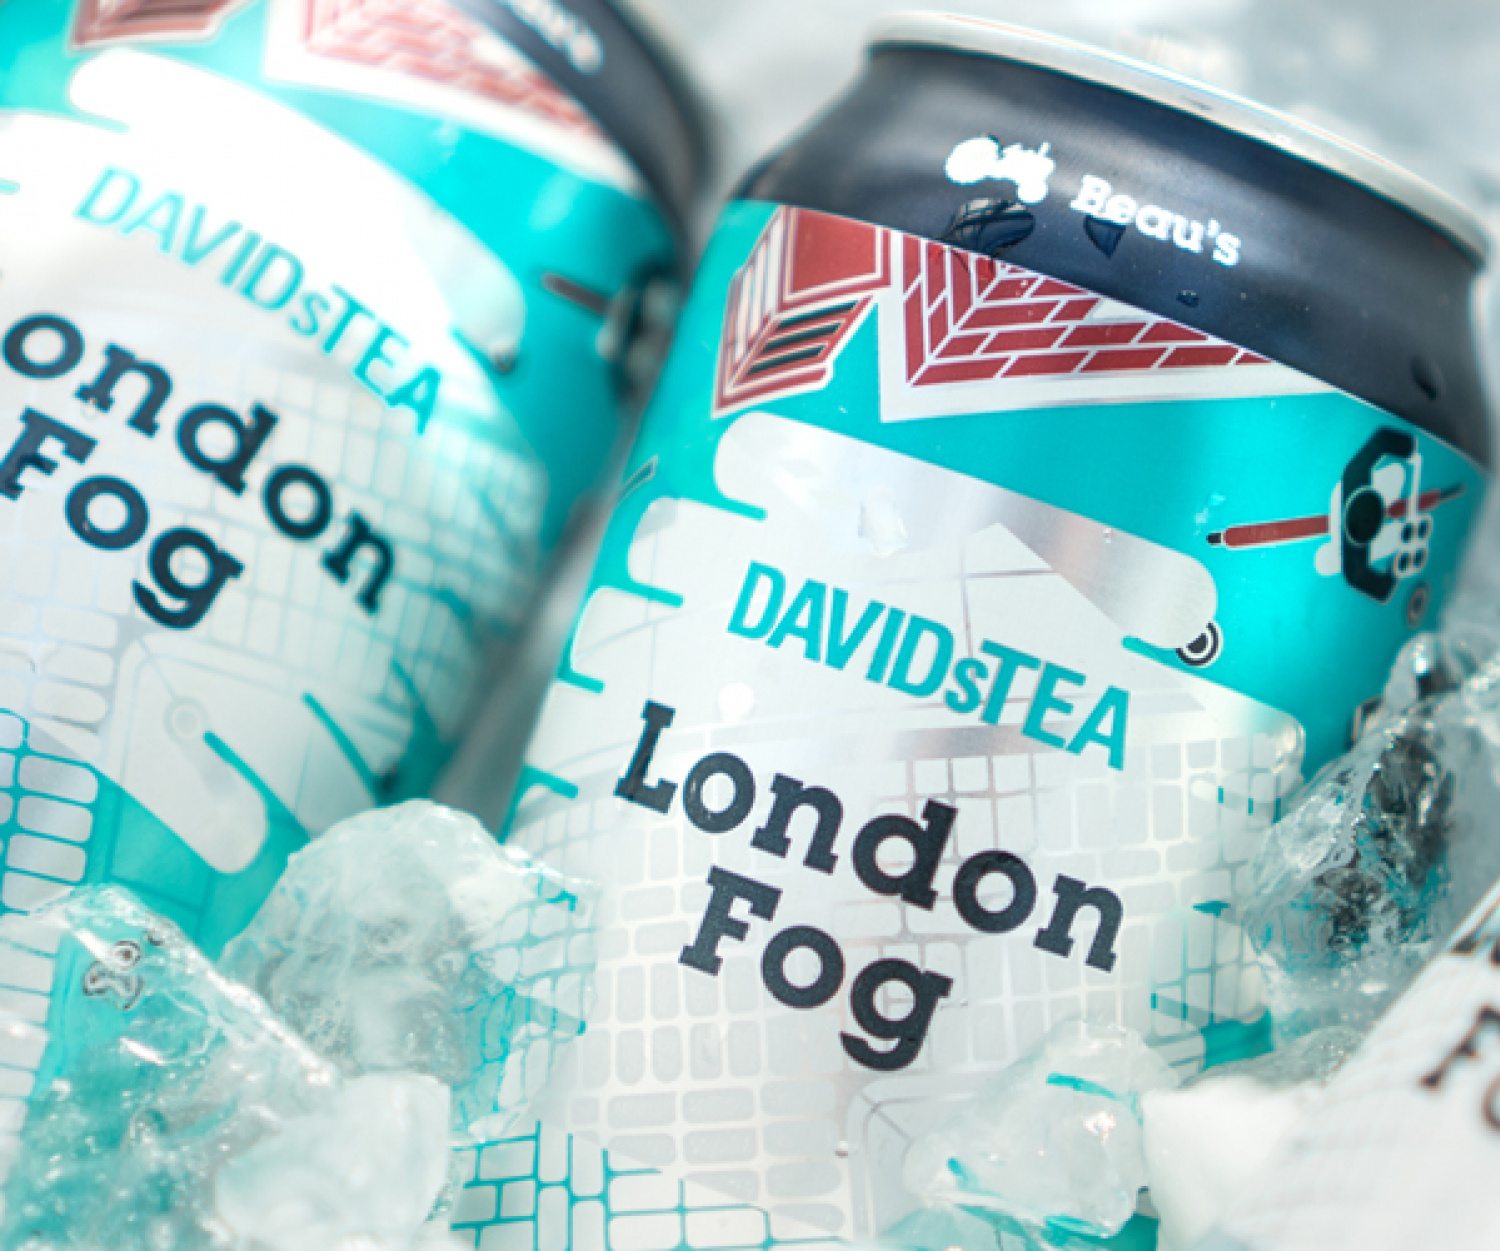 Beau's David's Tea London Fog